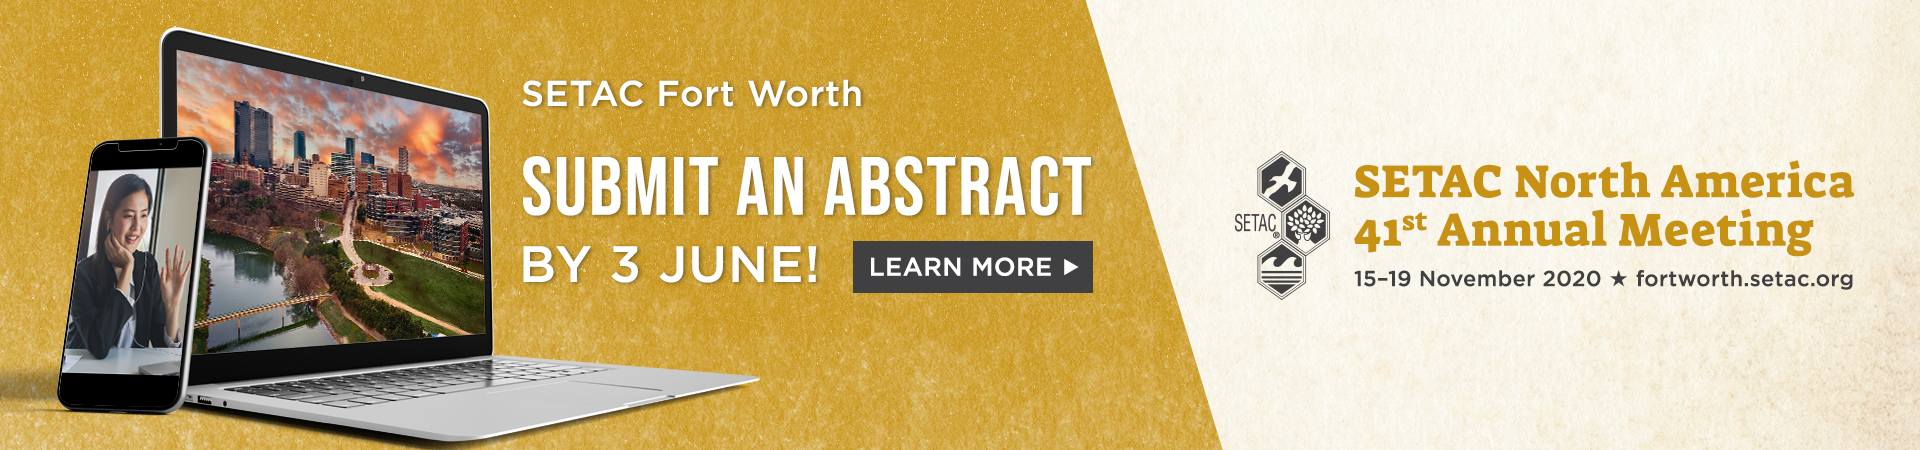 Submit an abstract for SETAC Fort Worth